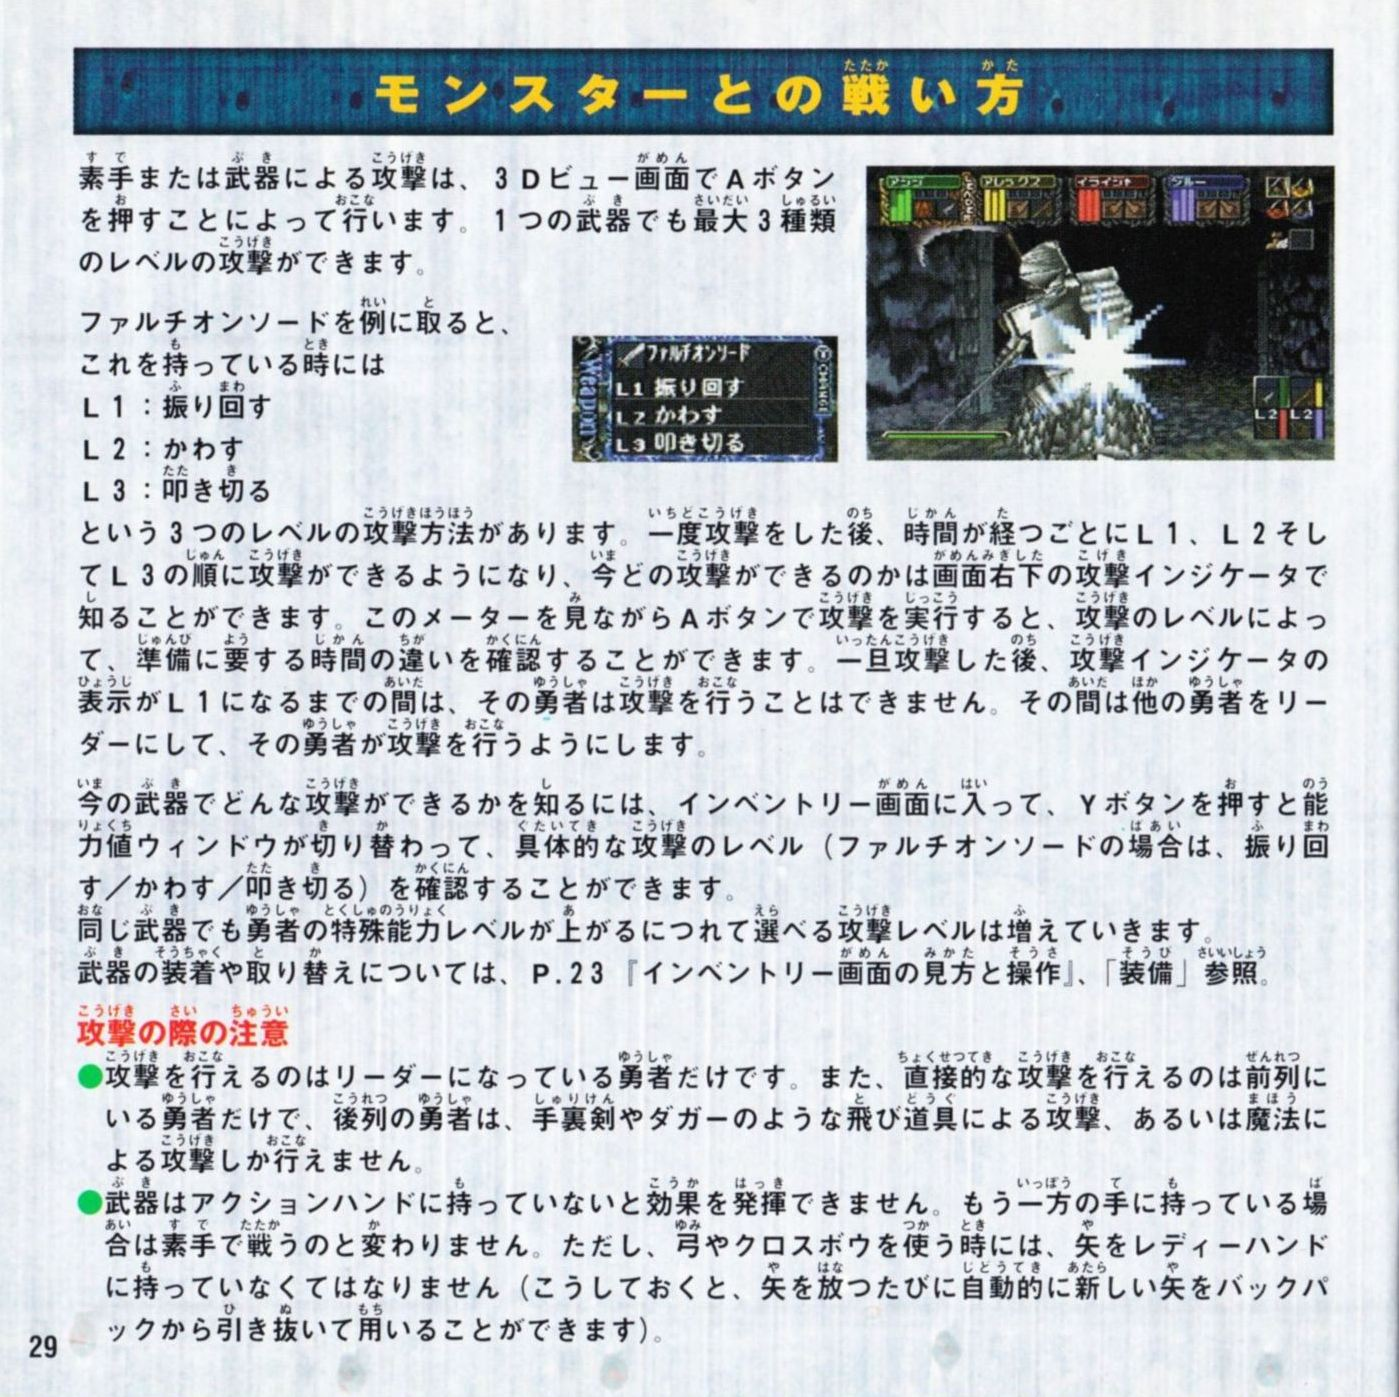 Game - Dungeon Master Nexus - JP - Sega Saturn - Booklet - Page 030 - Scan